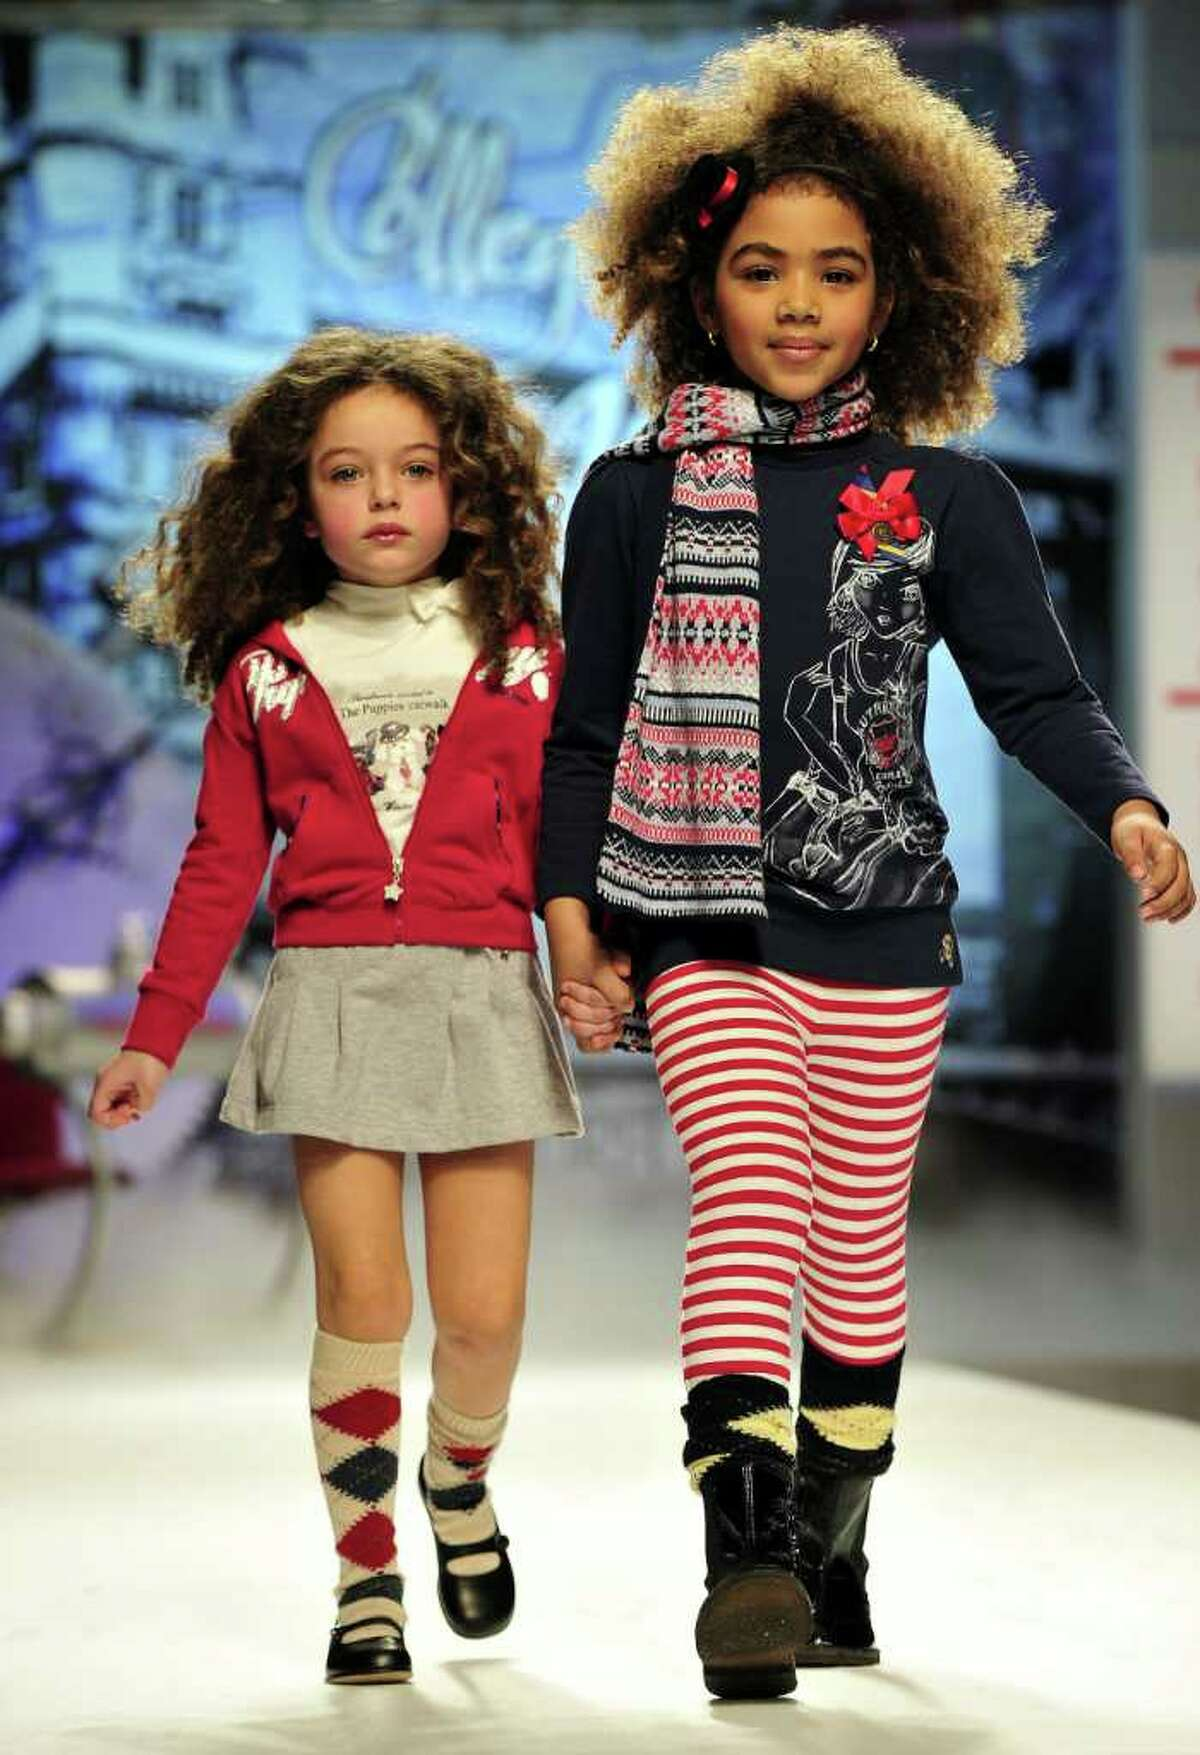 Models present creations of the collection of Italian design label Sarabanda at the annual 'Pitti Bimbo' fashion show for children, in Florence Italy, Thursday Jan. 20, 2011.